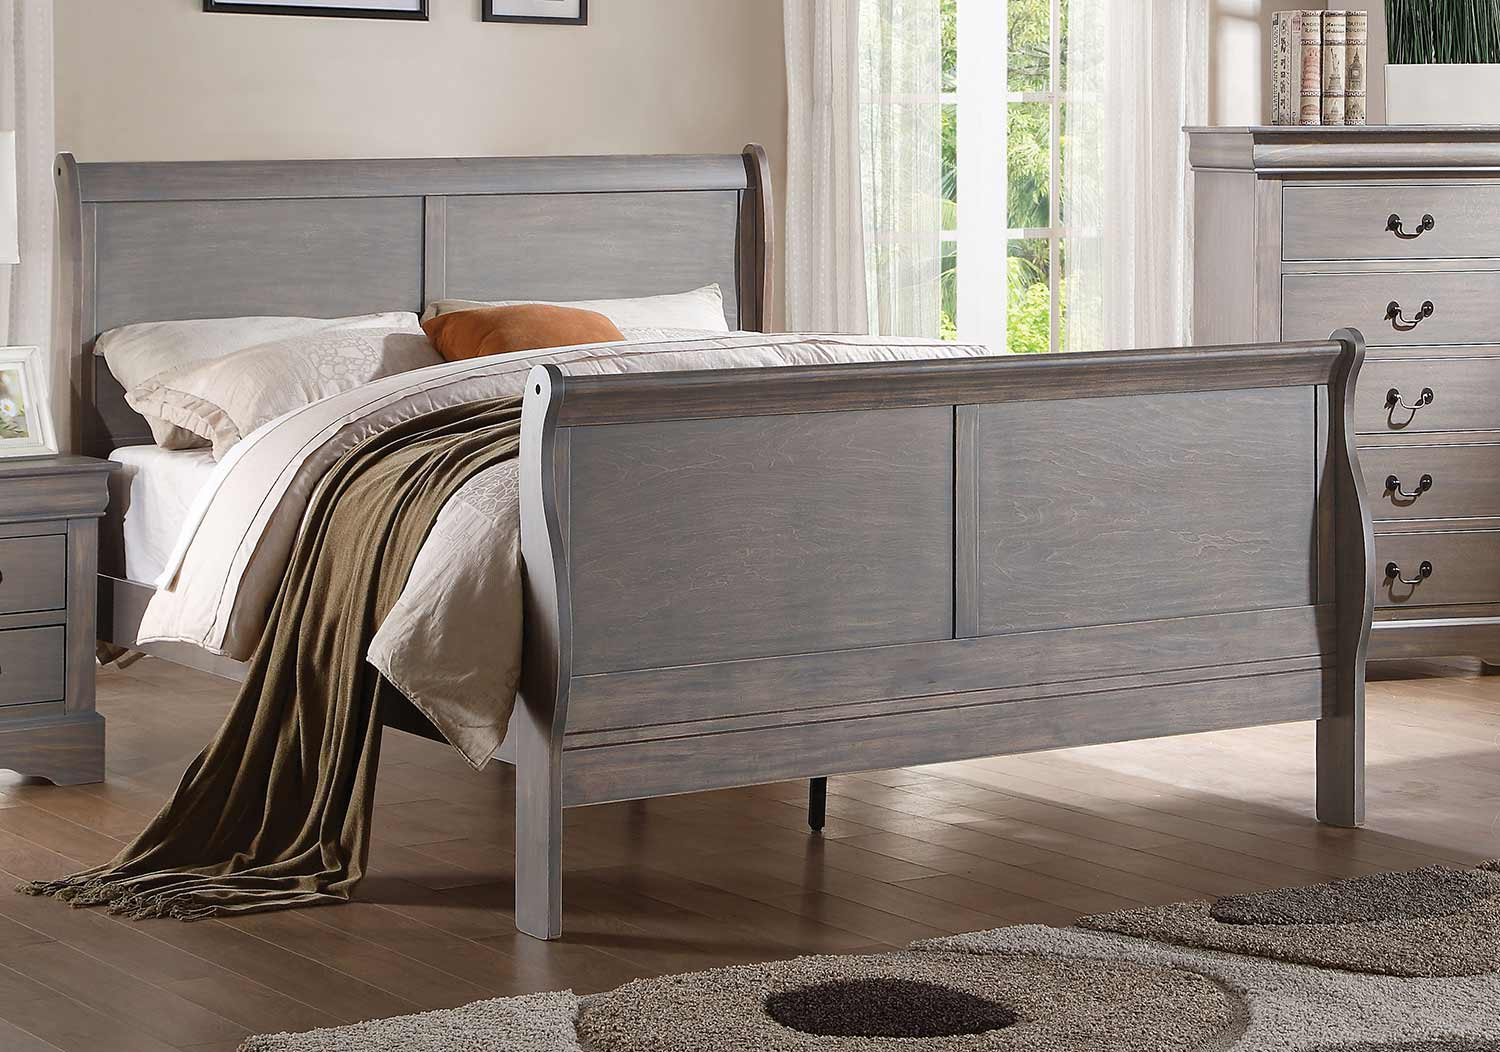 Acme Louis Philippe III Bed - Antique Gray